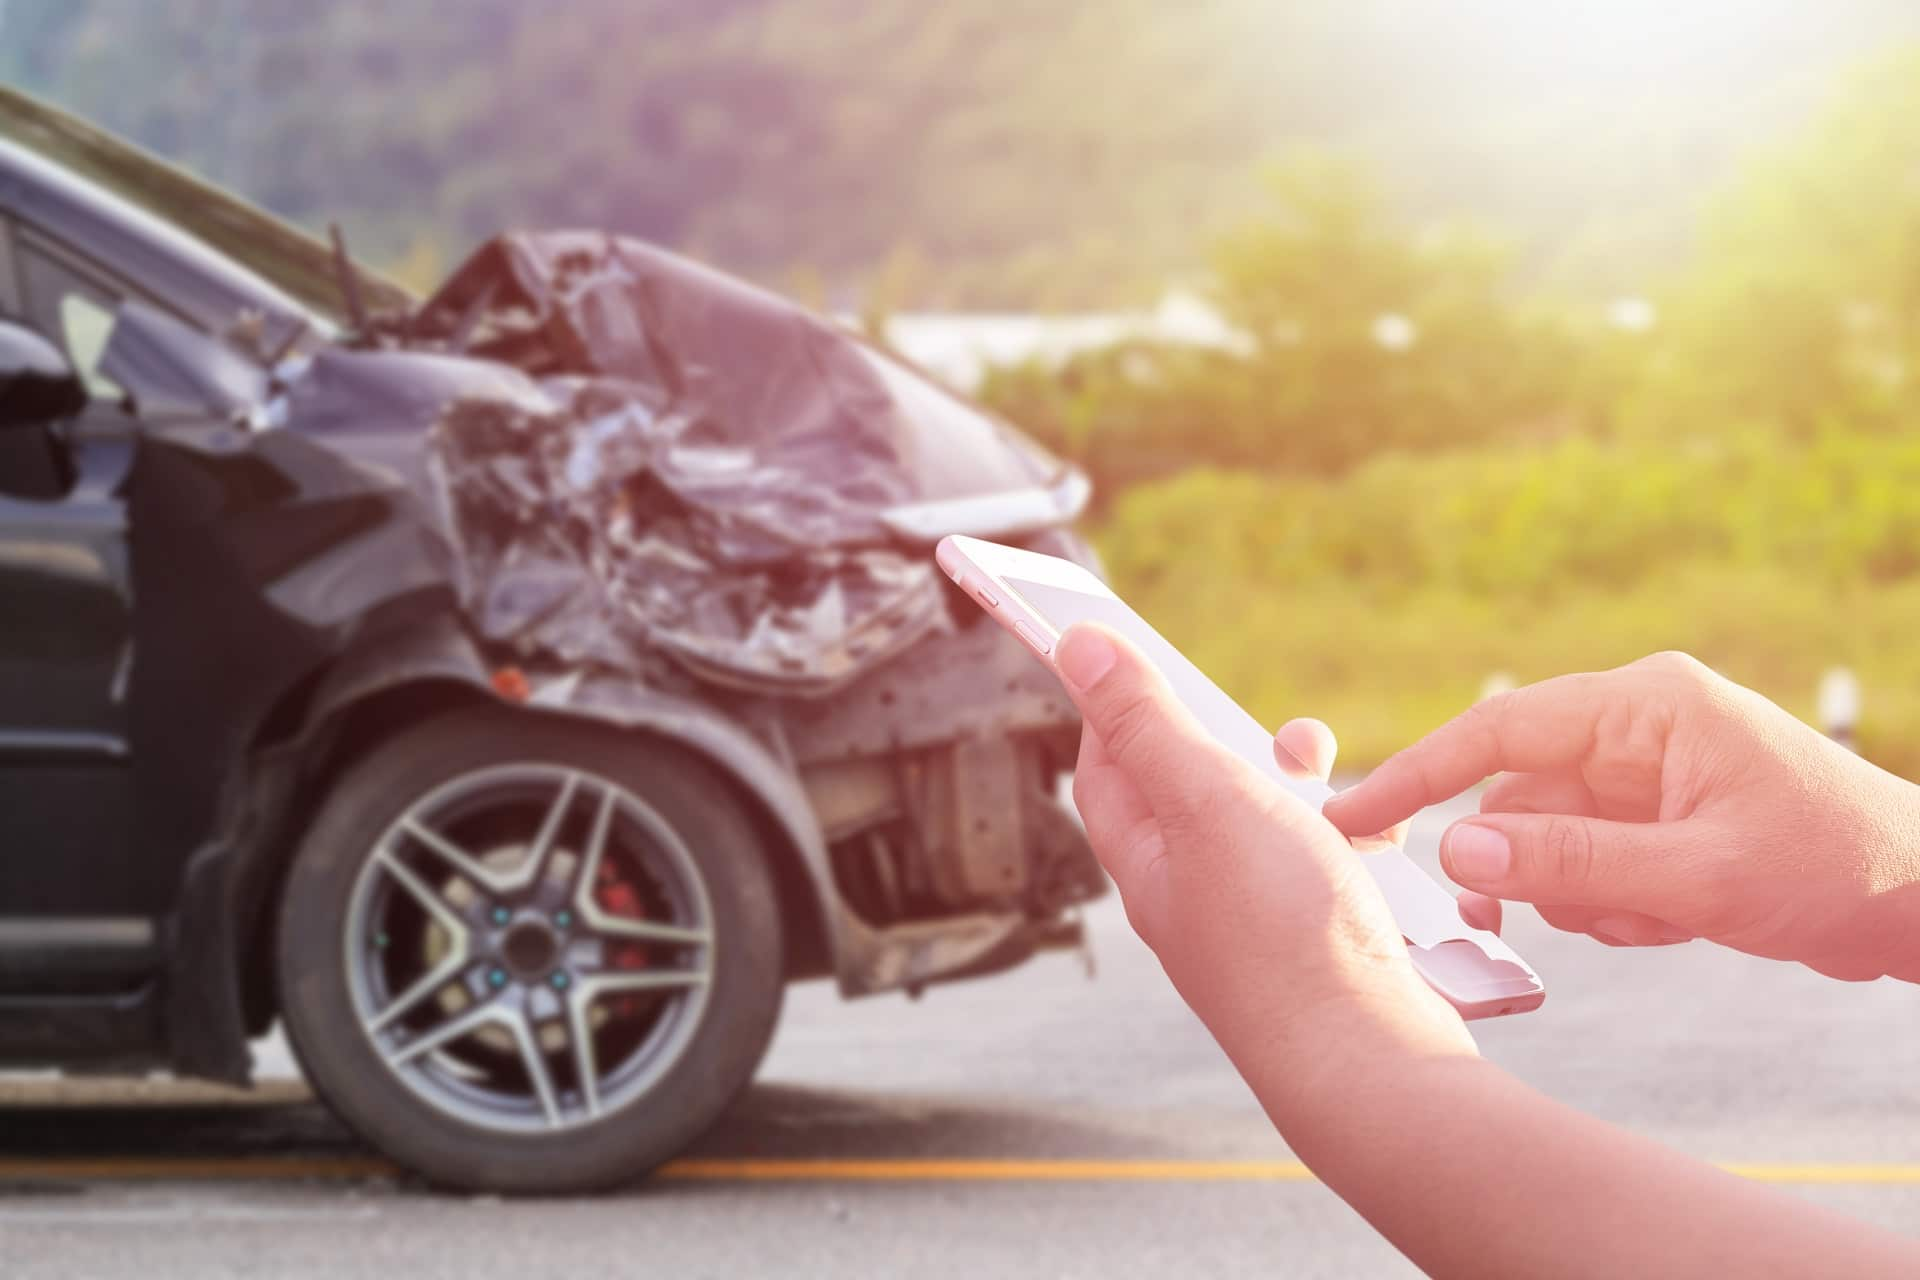 How Long Does an Auto Accident Insurance Claim Take in California?